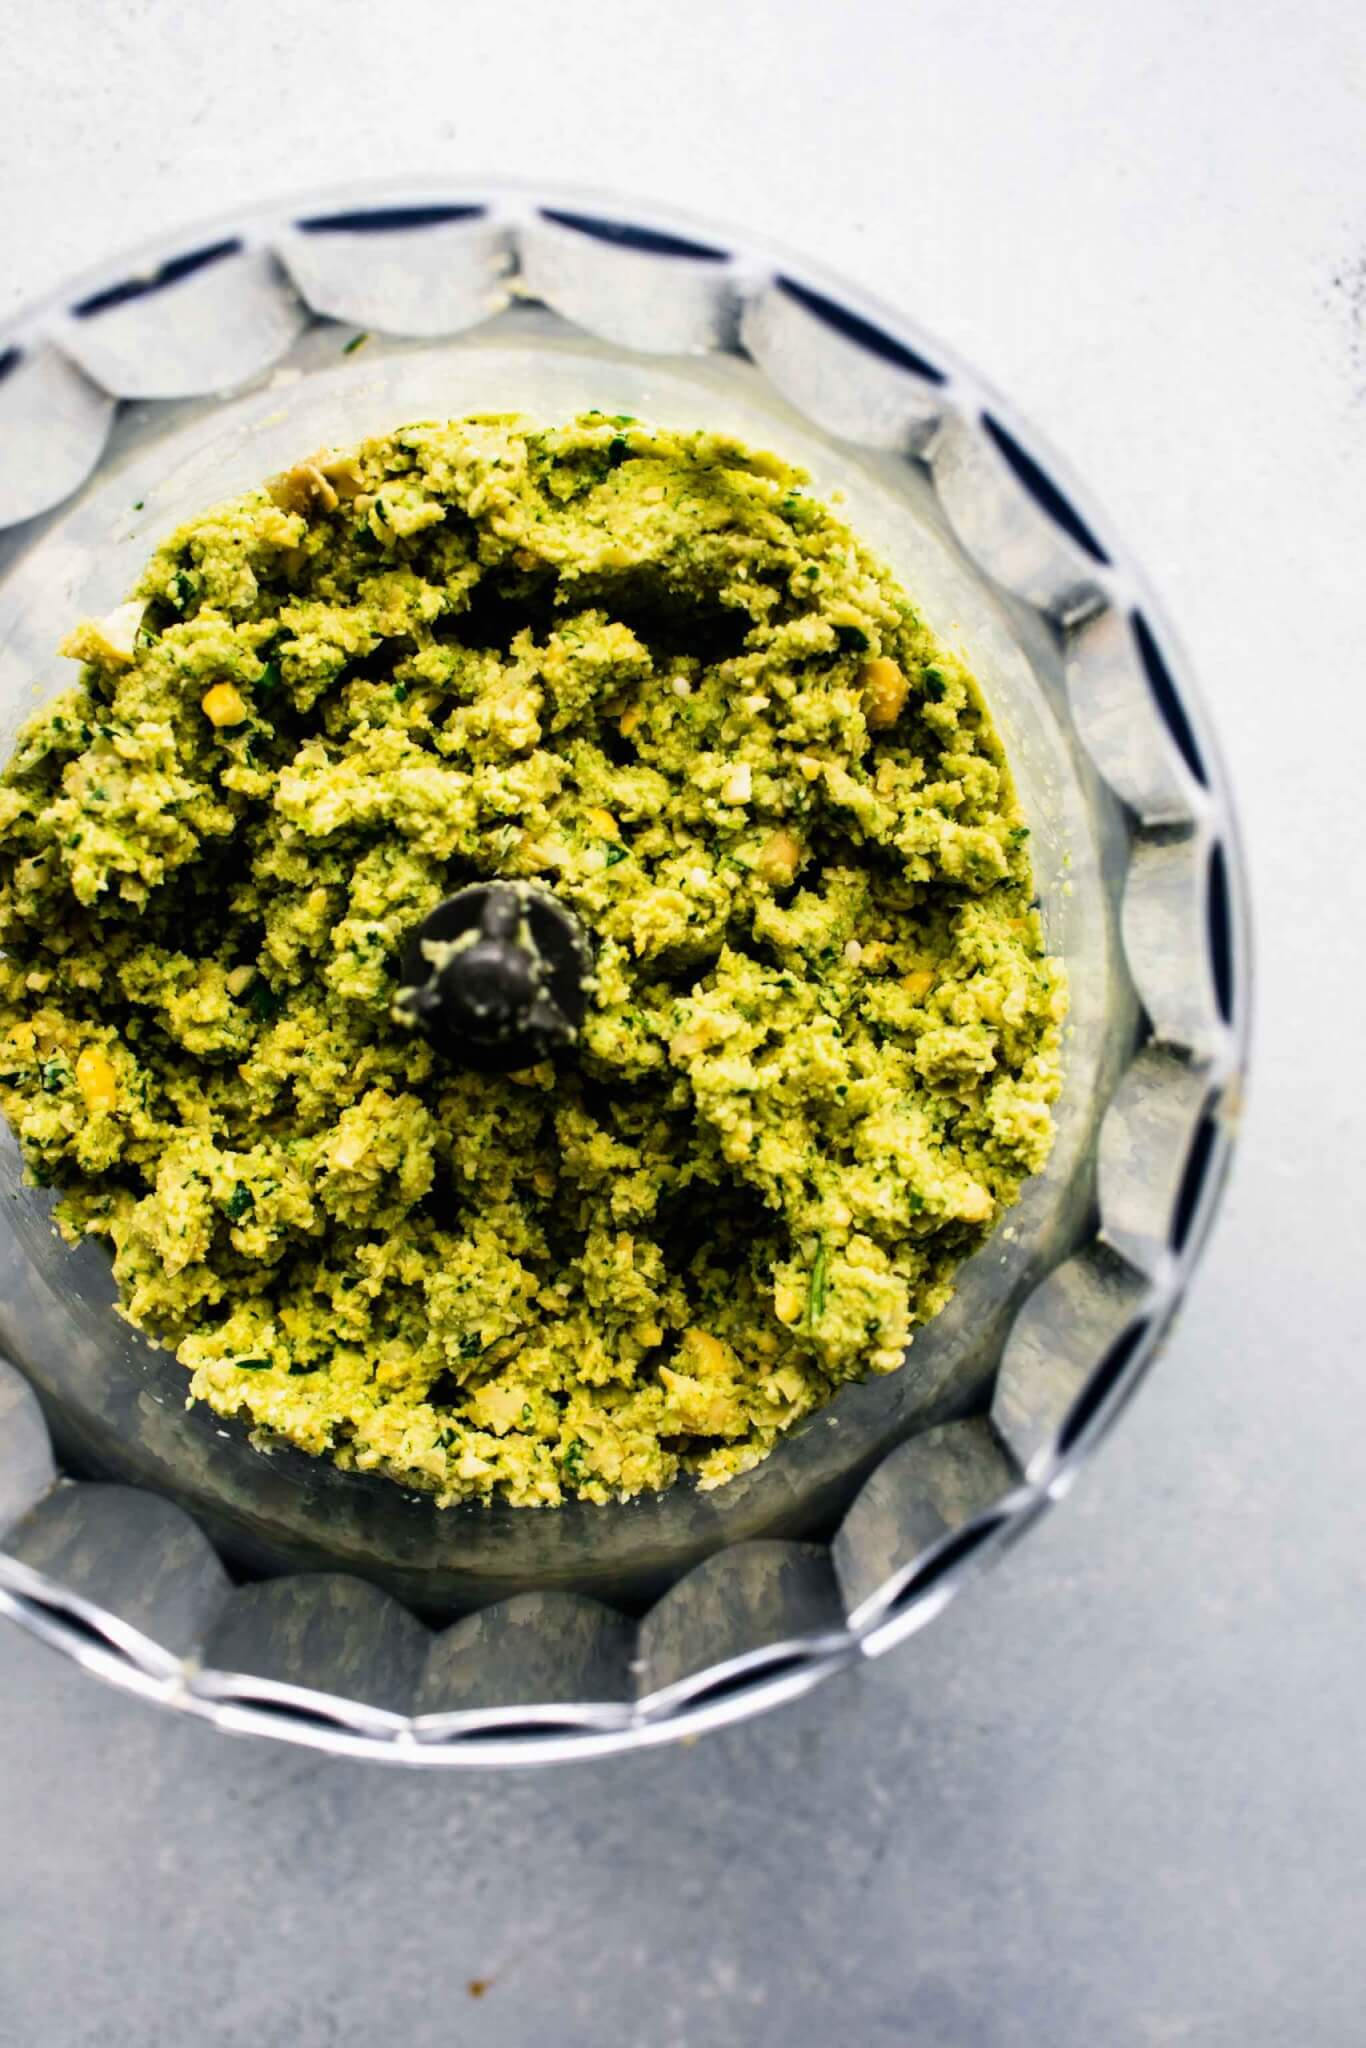 Processed falafel mixture in food processor bowl.